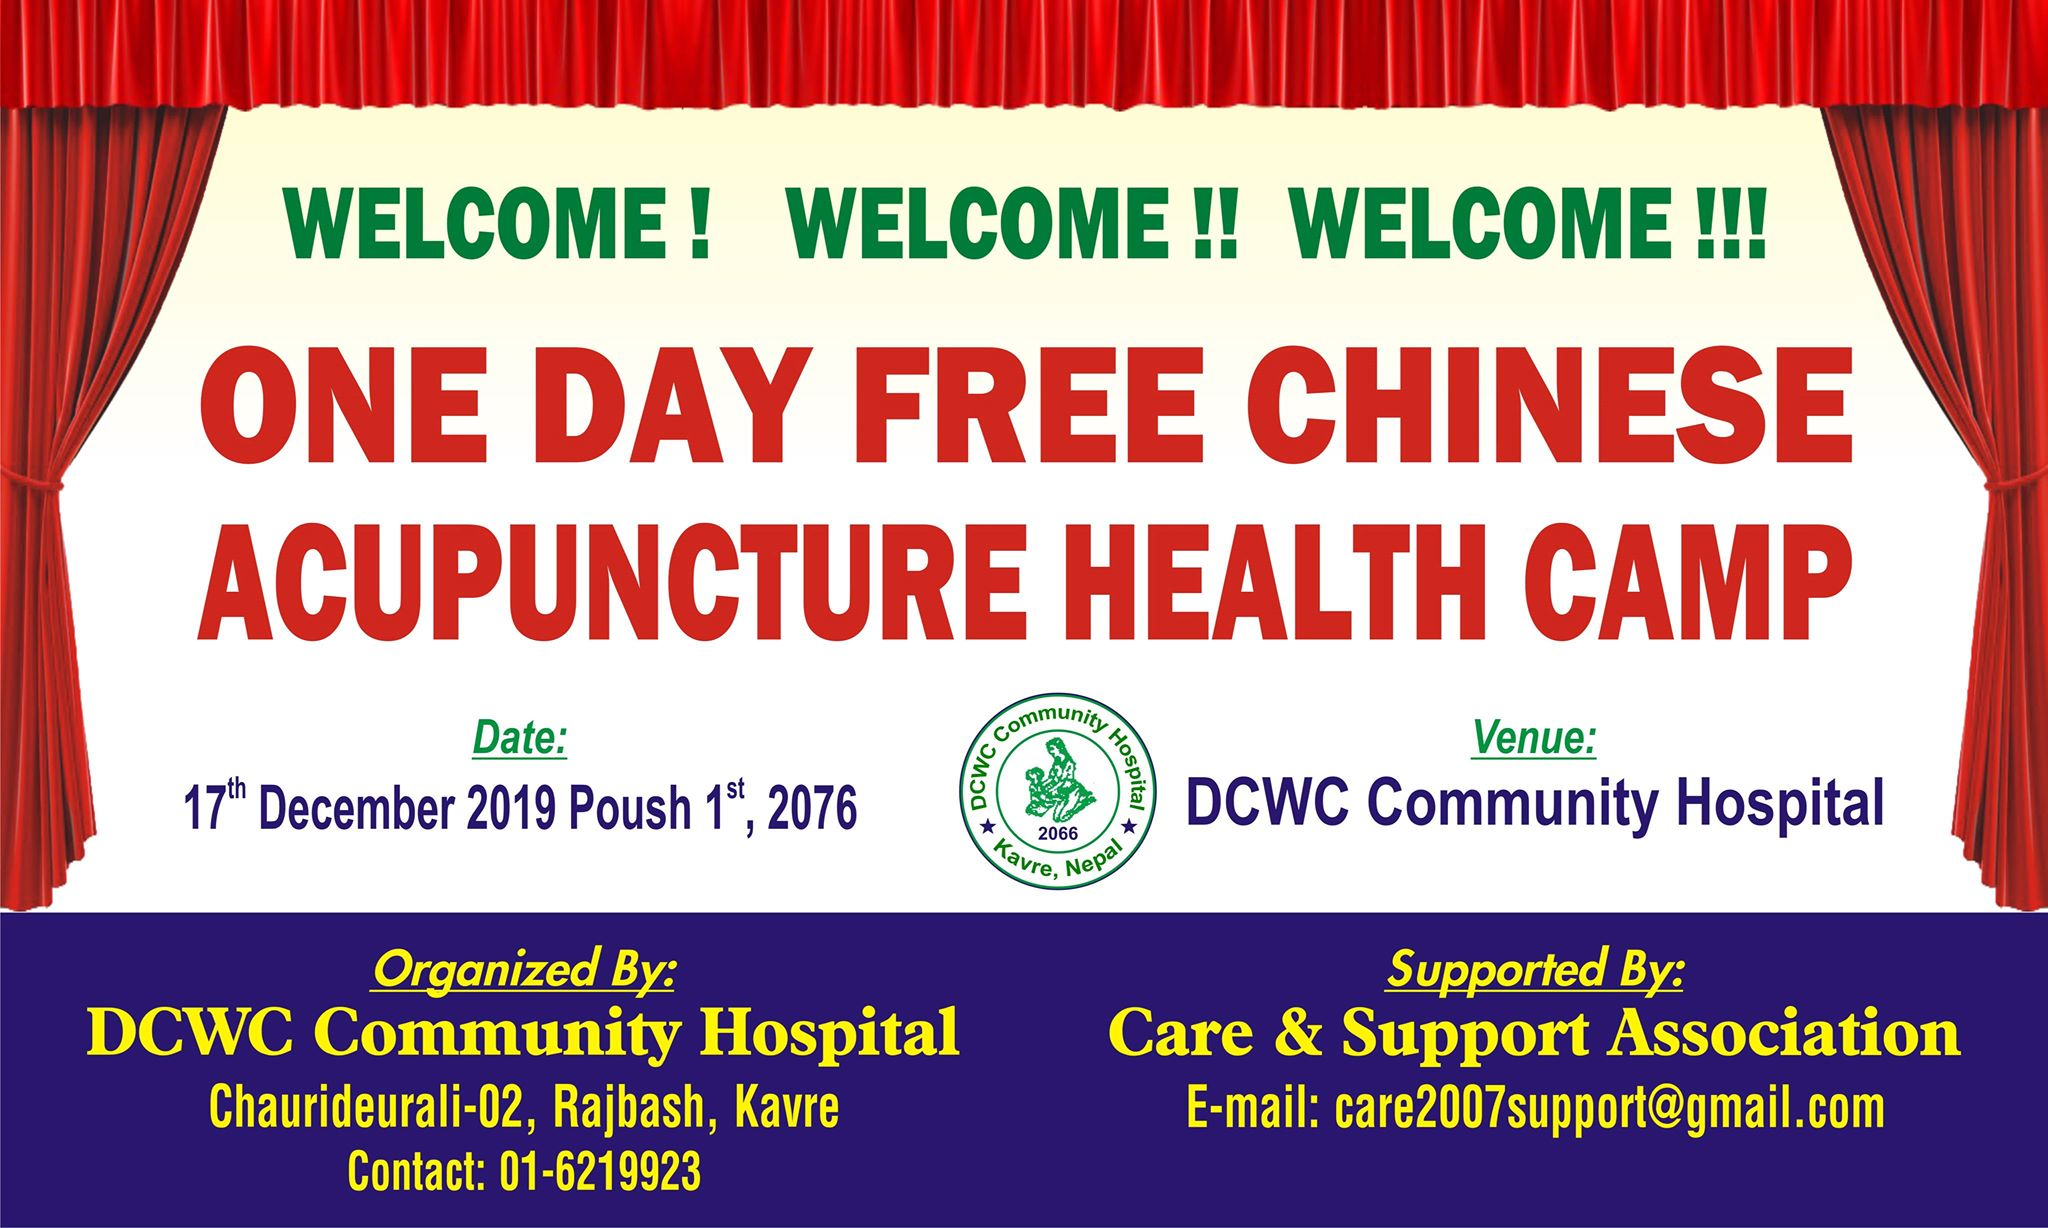 One day free Chinese Acupuncture Camp  on 17th December 2019